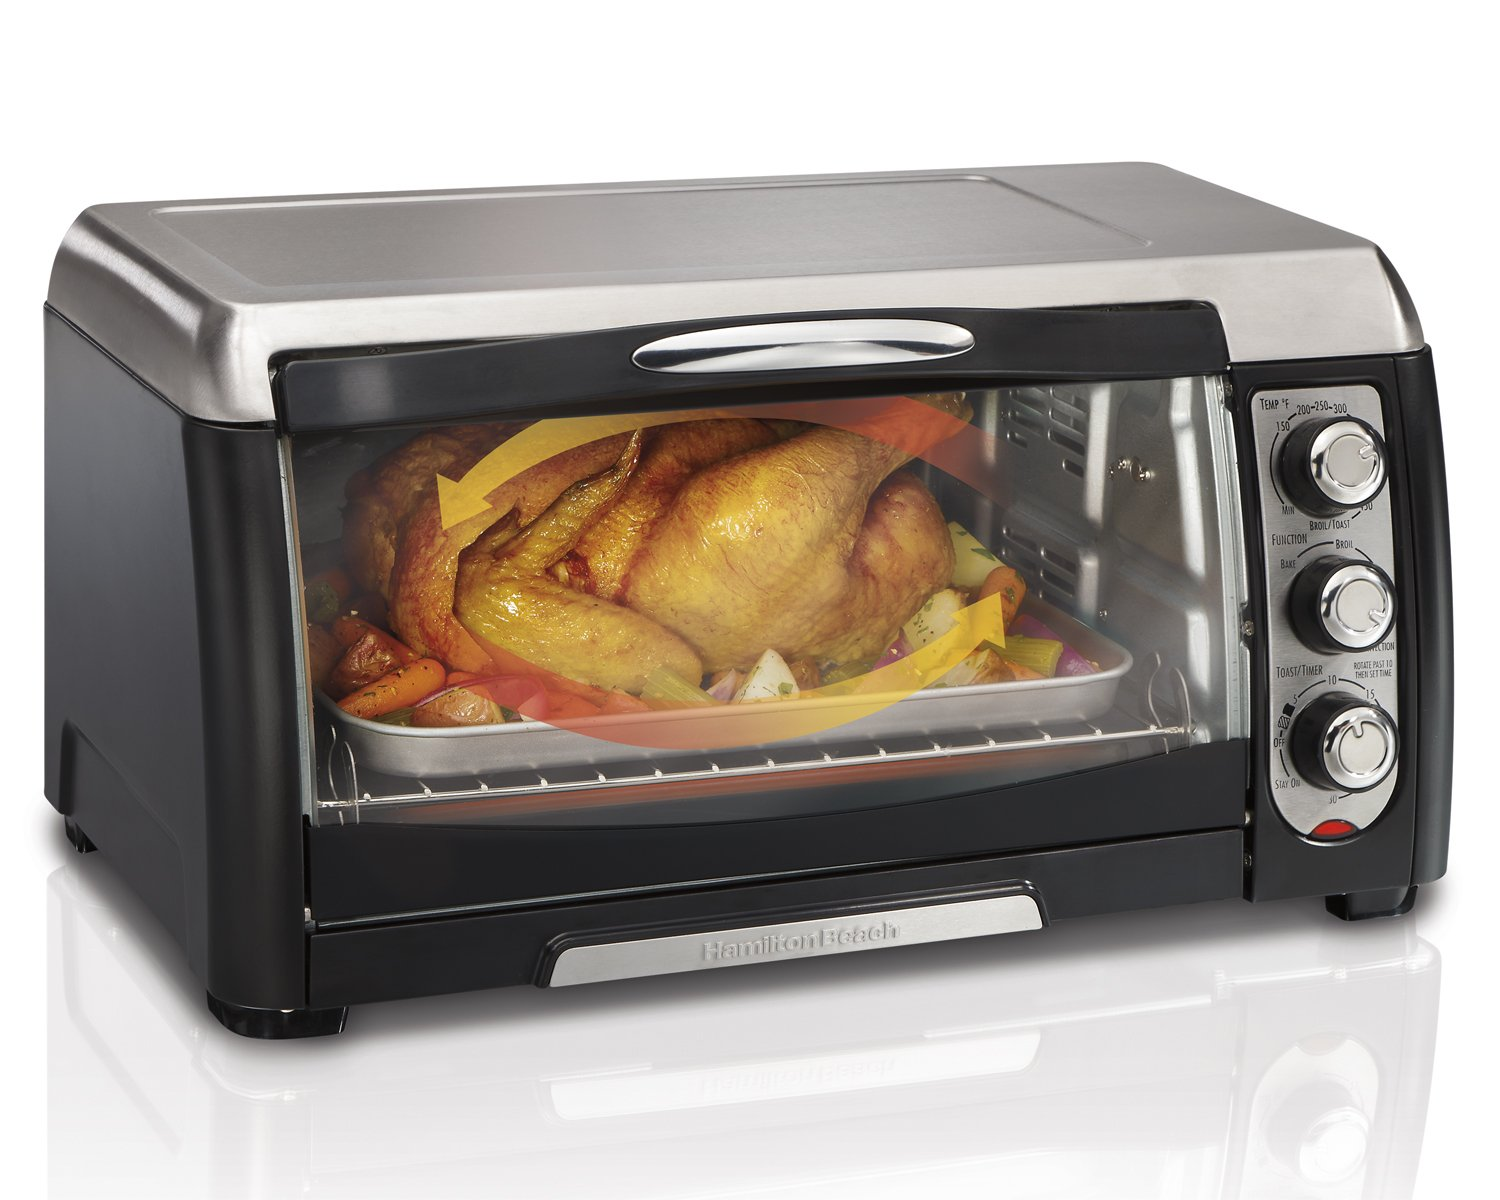 hamilton beach 31331 convection toaster oven new free shipping ebay. Black Bedroom Furniture Sets. Home Design Ideas